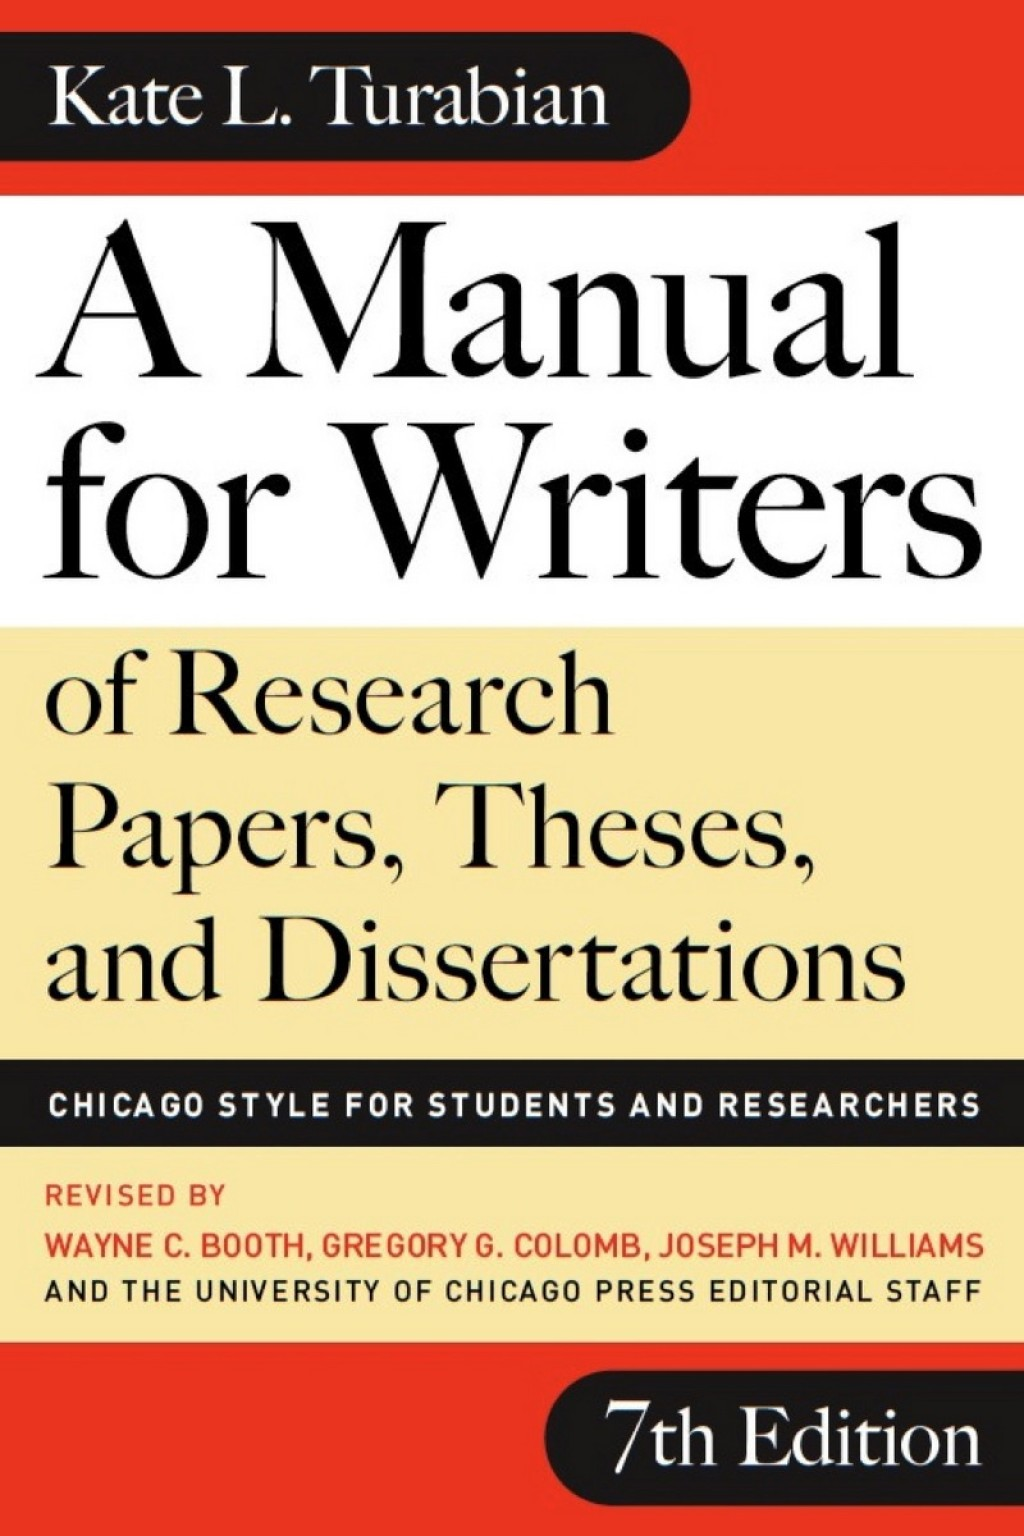 009 Research Paper Frontcover Manual For Writers Of Papers Theses And Sensational A Dissertations Ed. 8 8th Edition Ninth Pdf Large